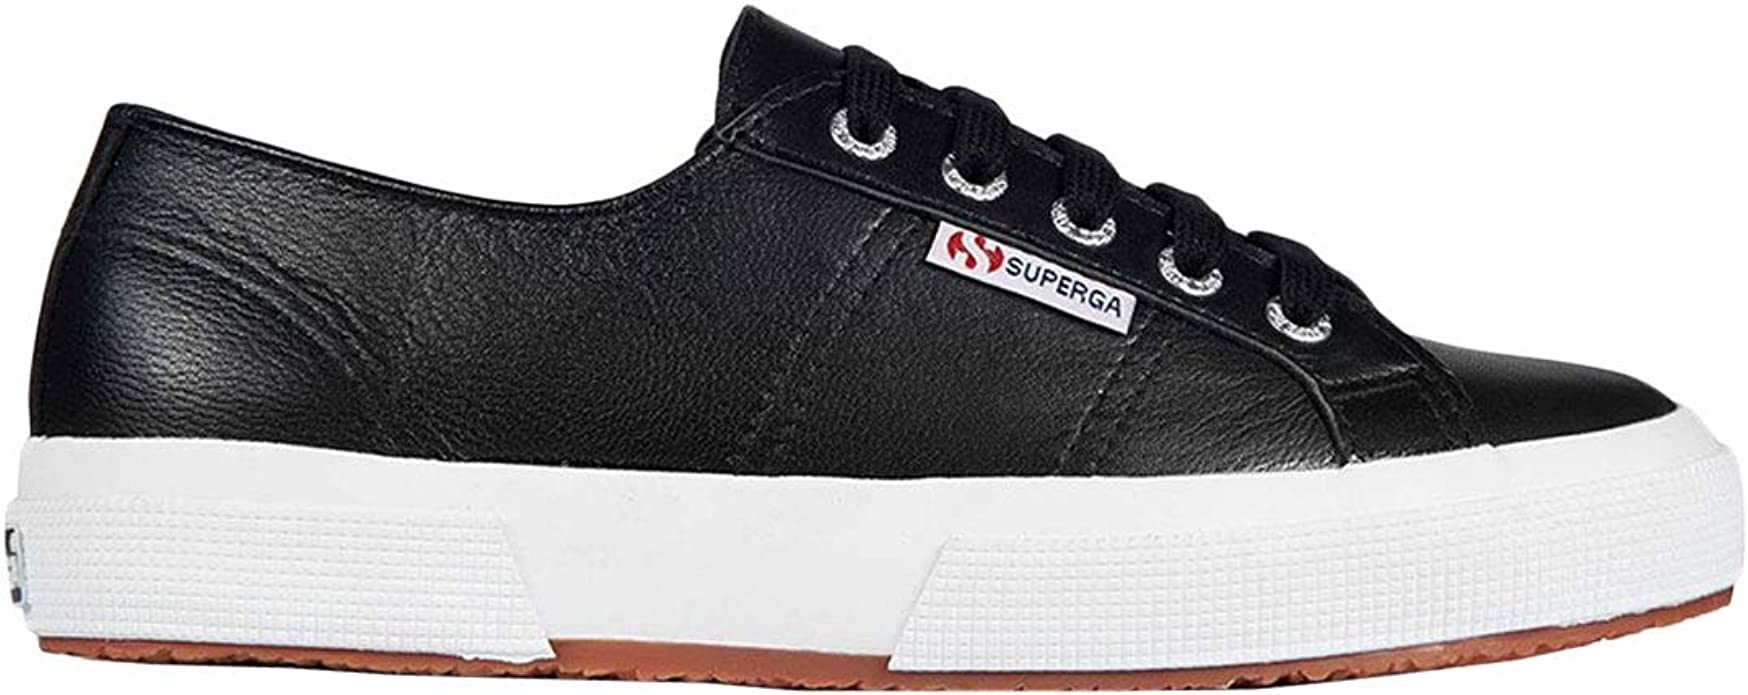 Superga Women's 2750 Sneakers Leather